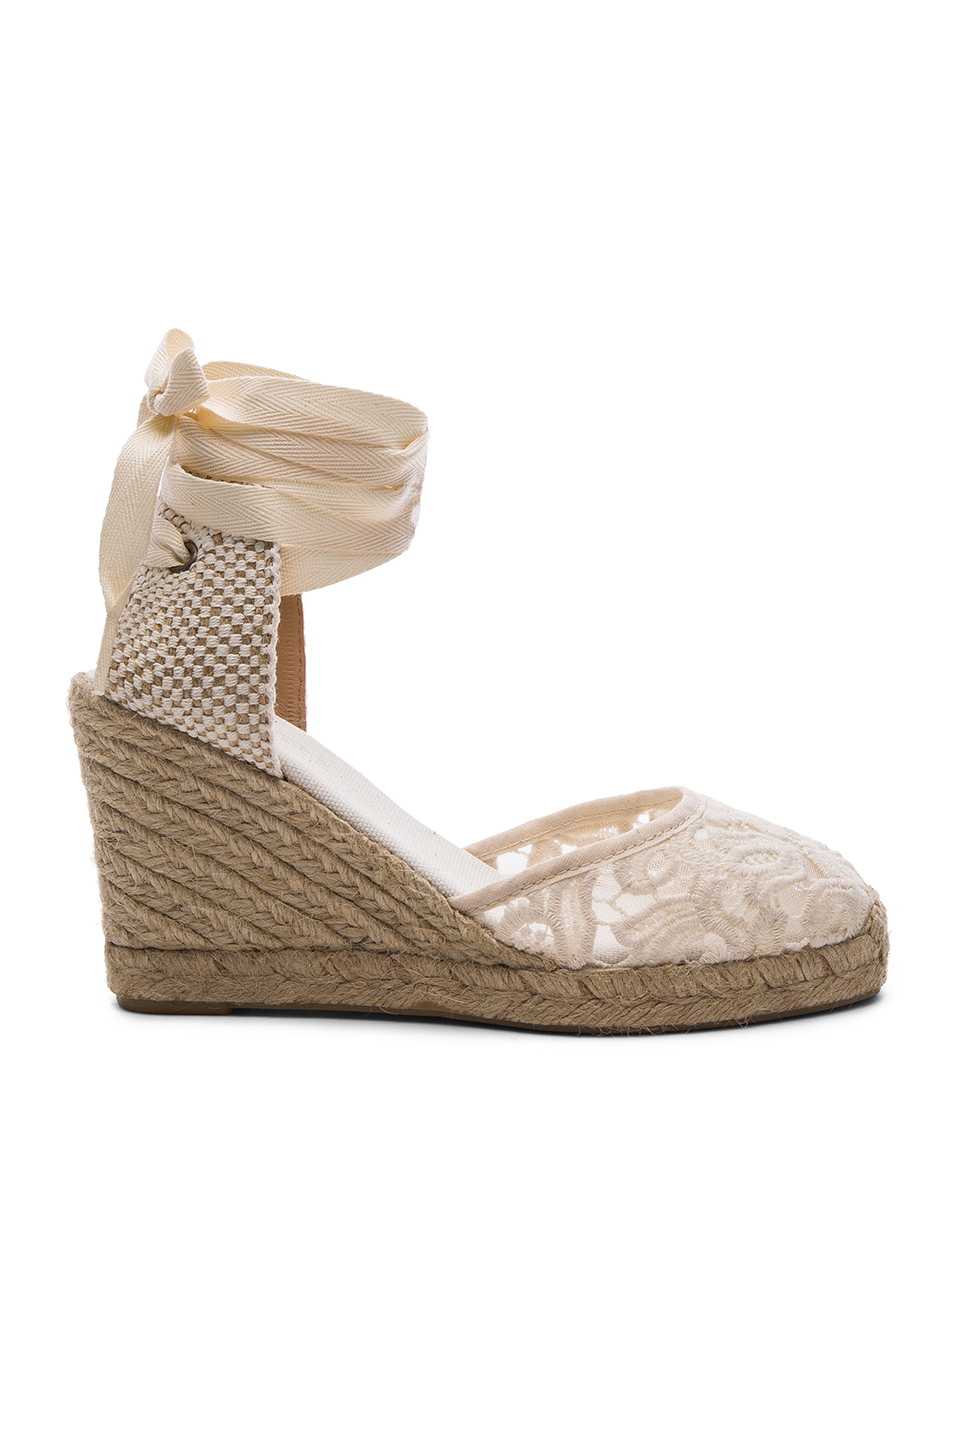 ac5680f2068 Buy Original Soludos Tall Wedge at Indonesia